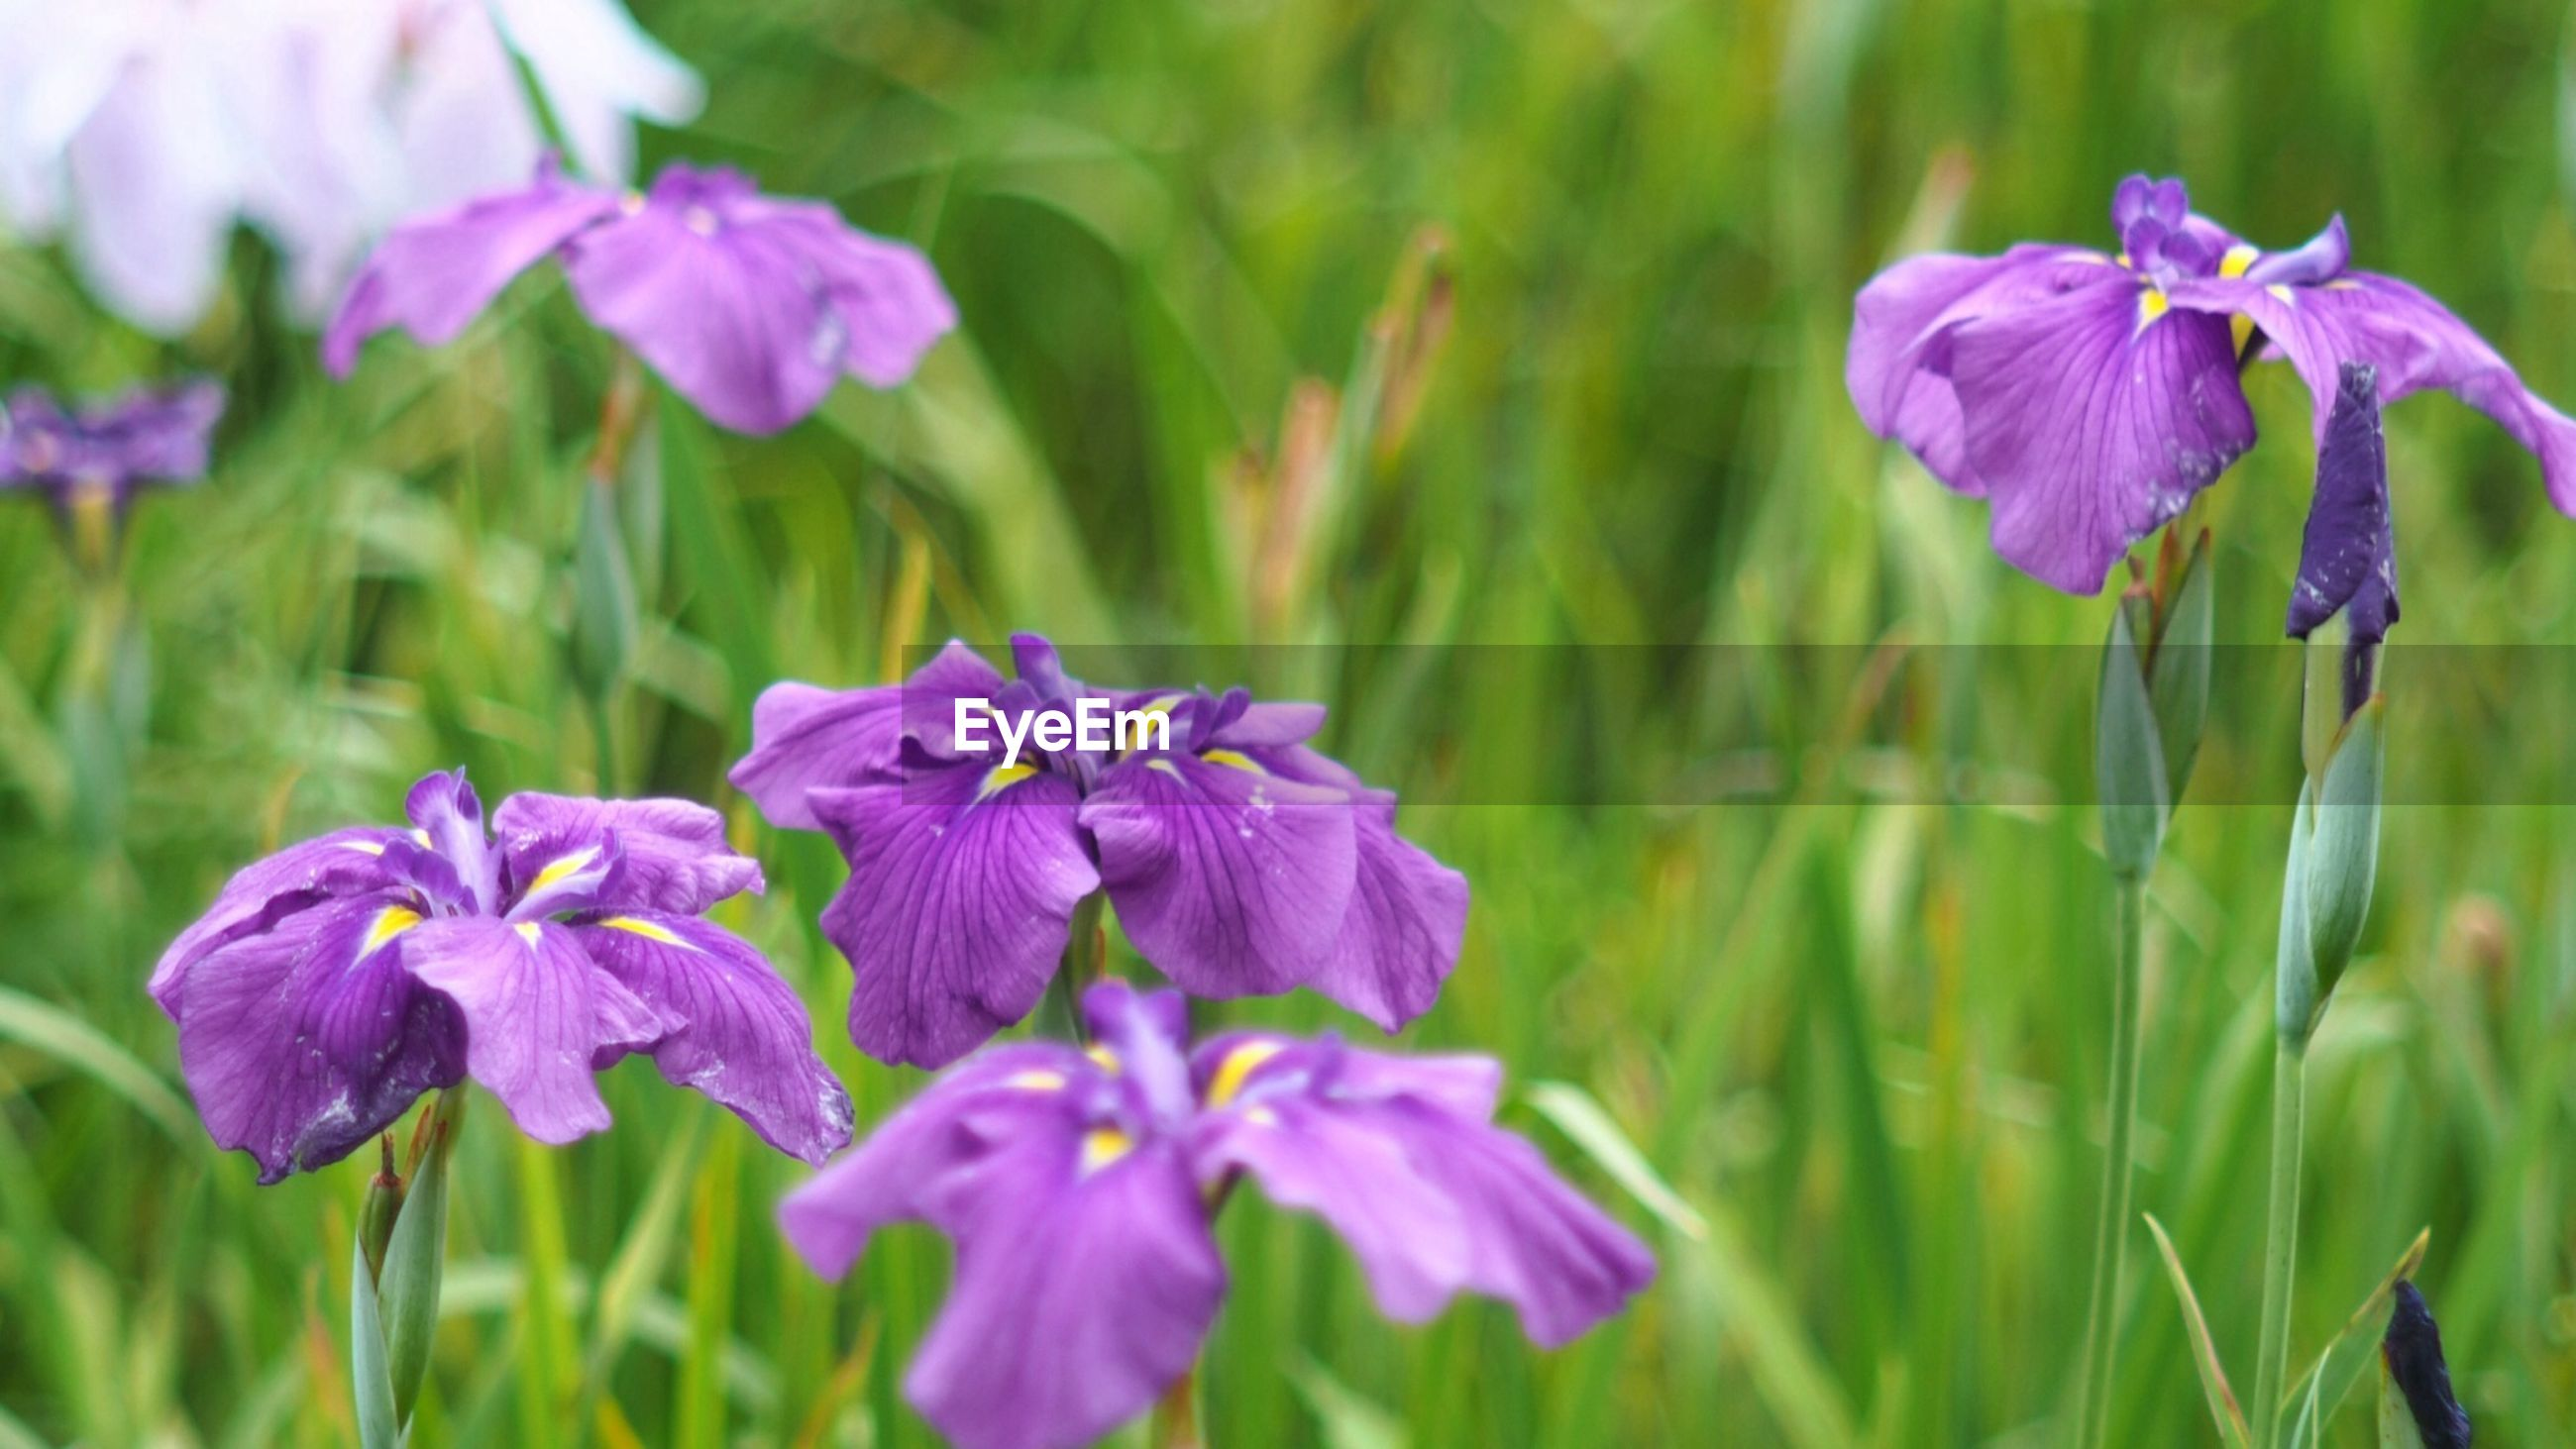 flower, freshness, purple, fragility, petal, growth, flower head, beauty in nature, focus on foreground, blooming, close-up, plant, nature, in bloom, field, stem, pink color, day, outdoors, selective focus